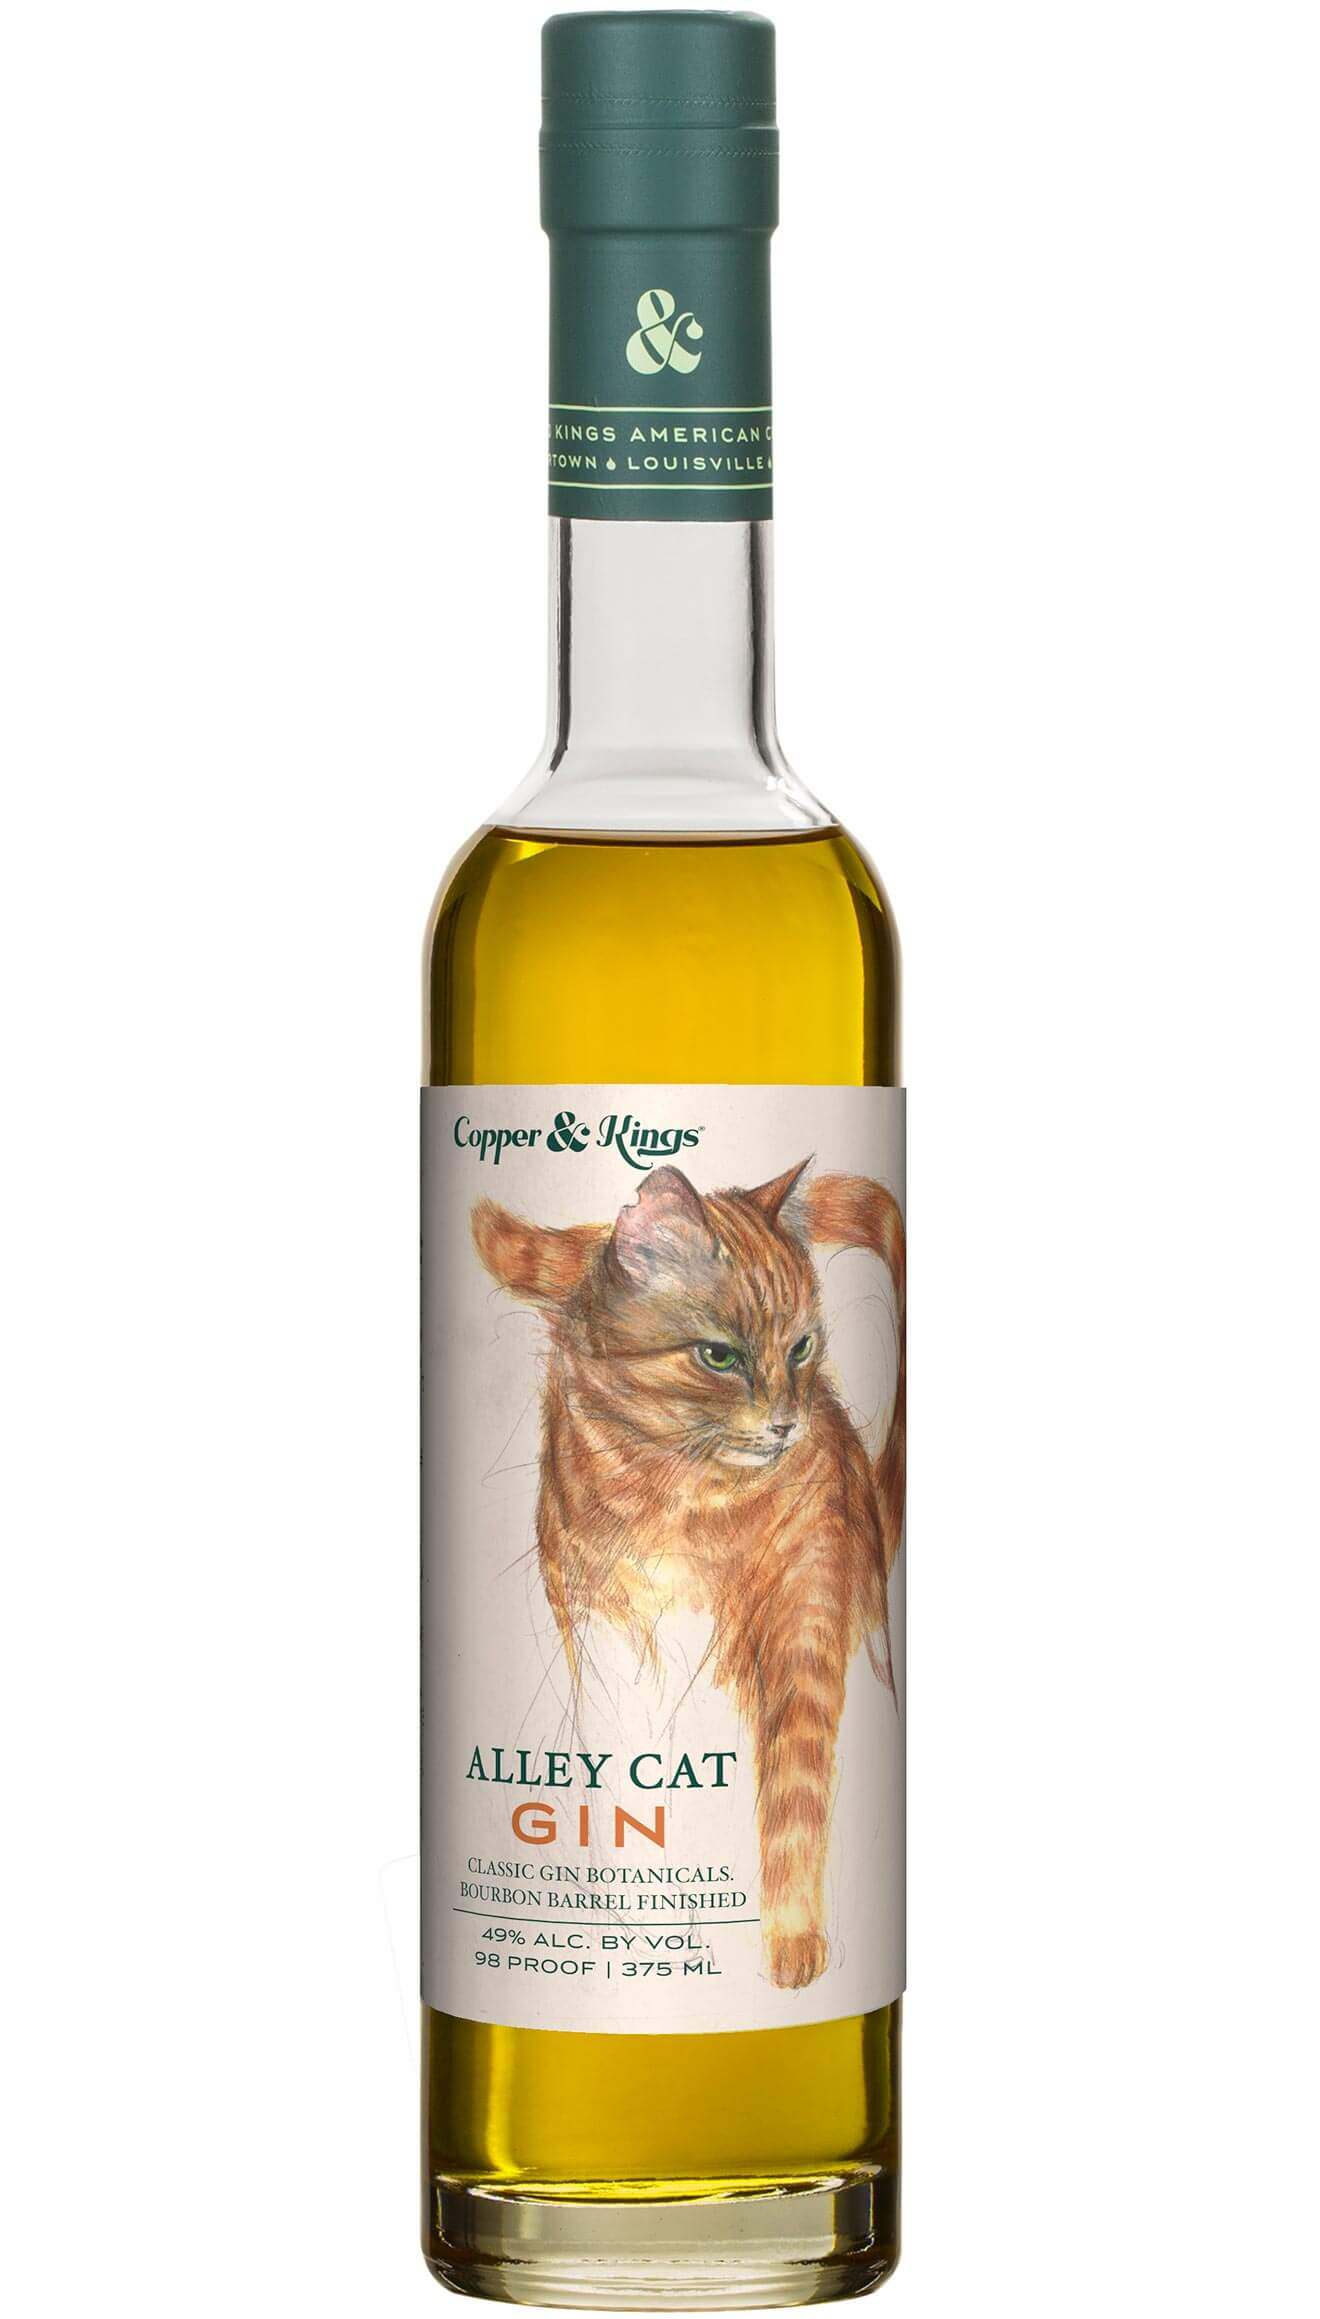 Copper & Kings Launches 'Alley Cat' Bourbon Barrel Aged Gin, featured brands